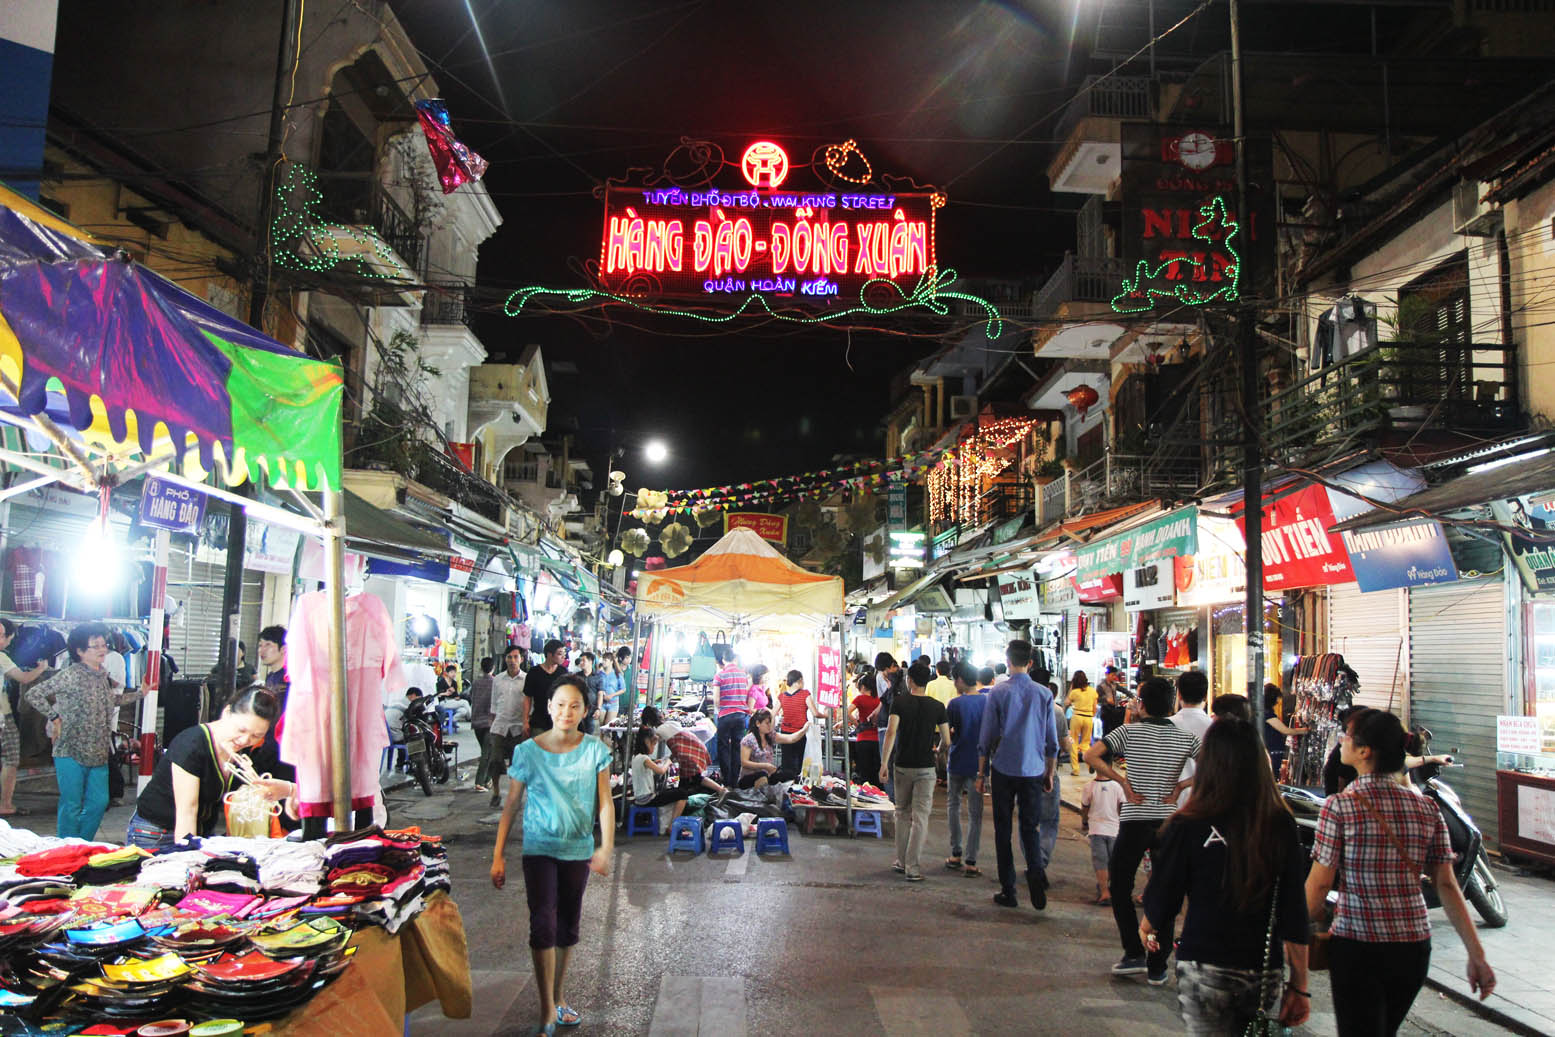 Travel Tips For Hanoi What To Do In The Evenings